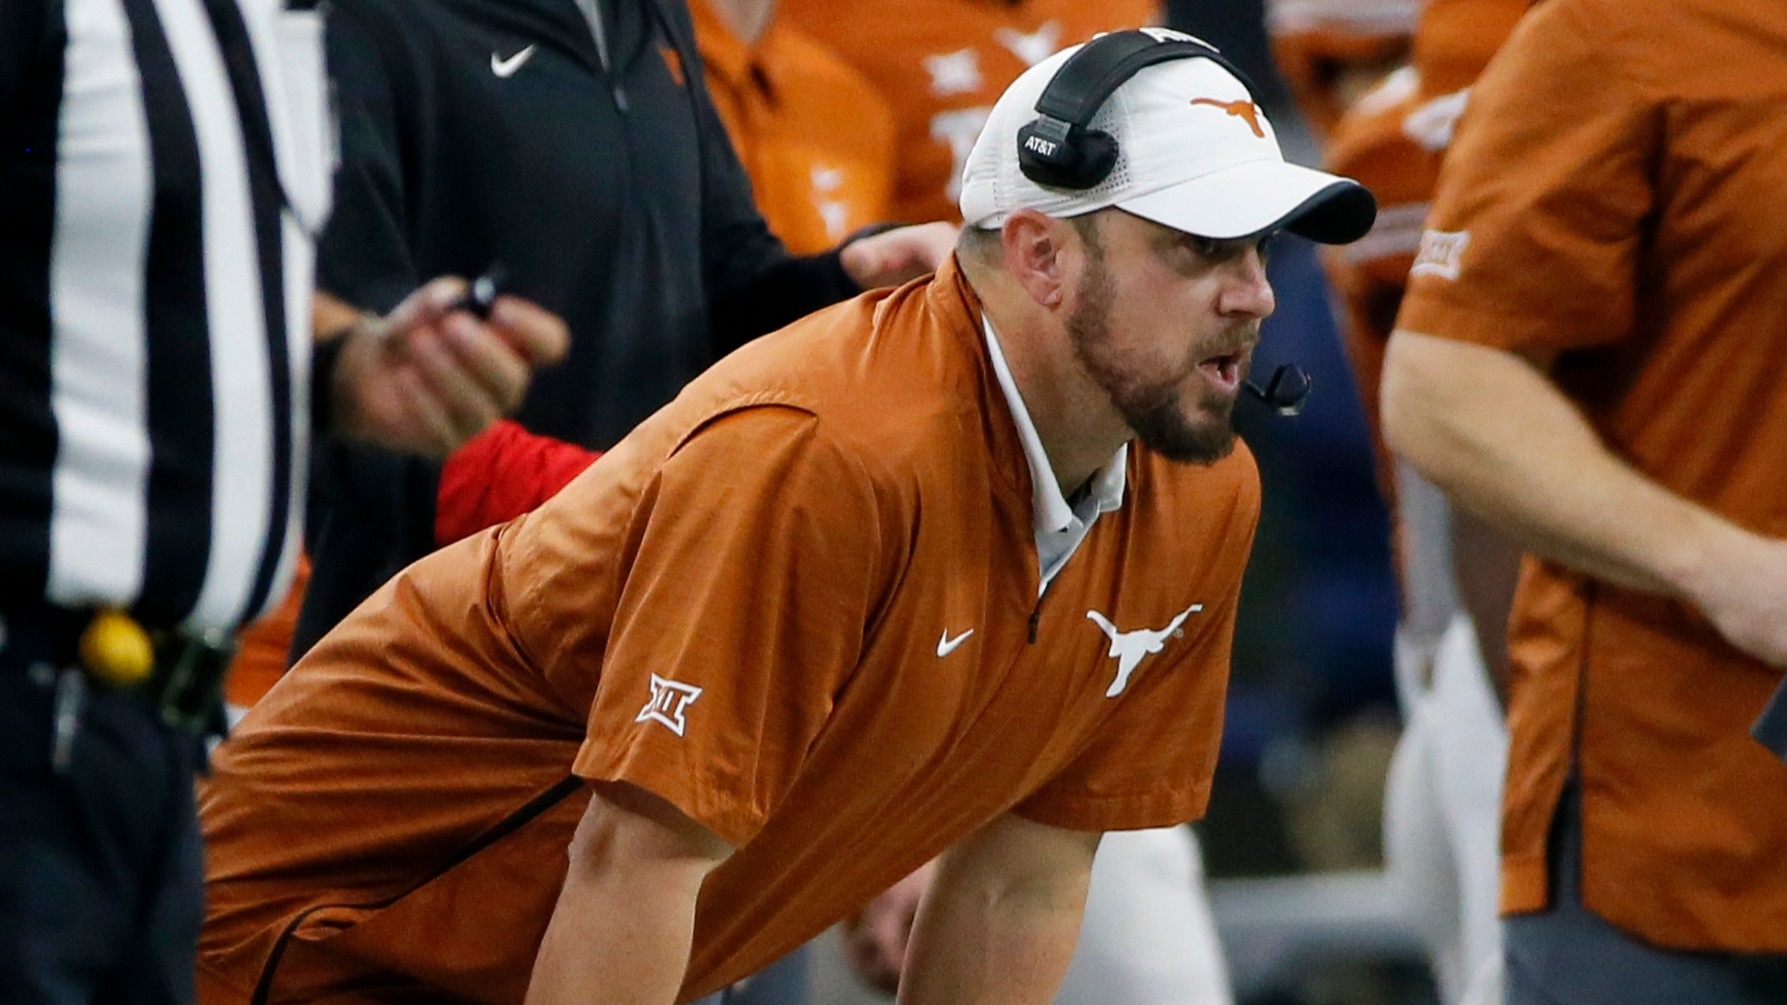 LSU at Texas betting guide: Tom Herman's ATS underdog record